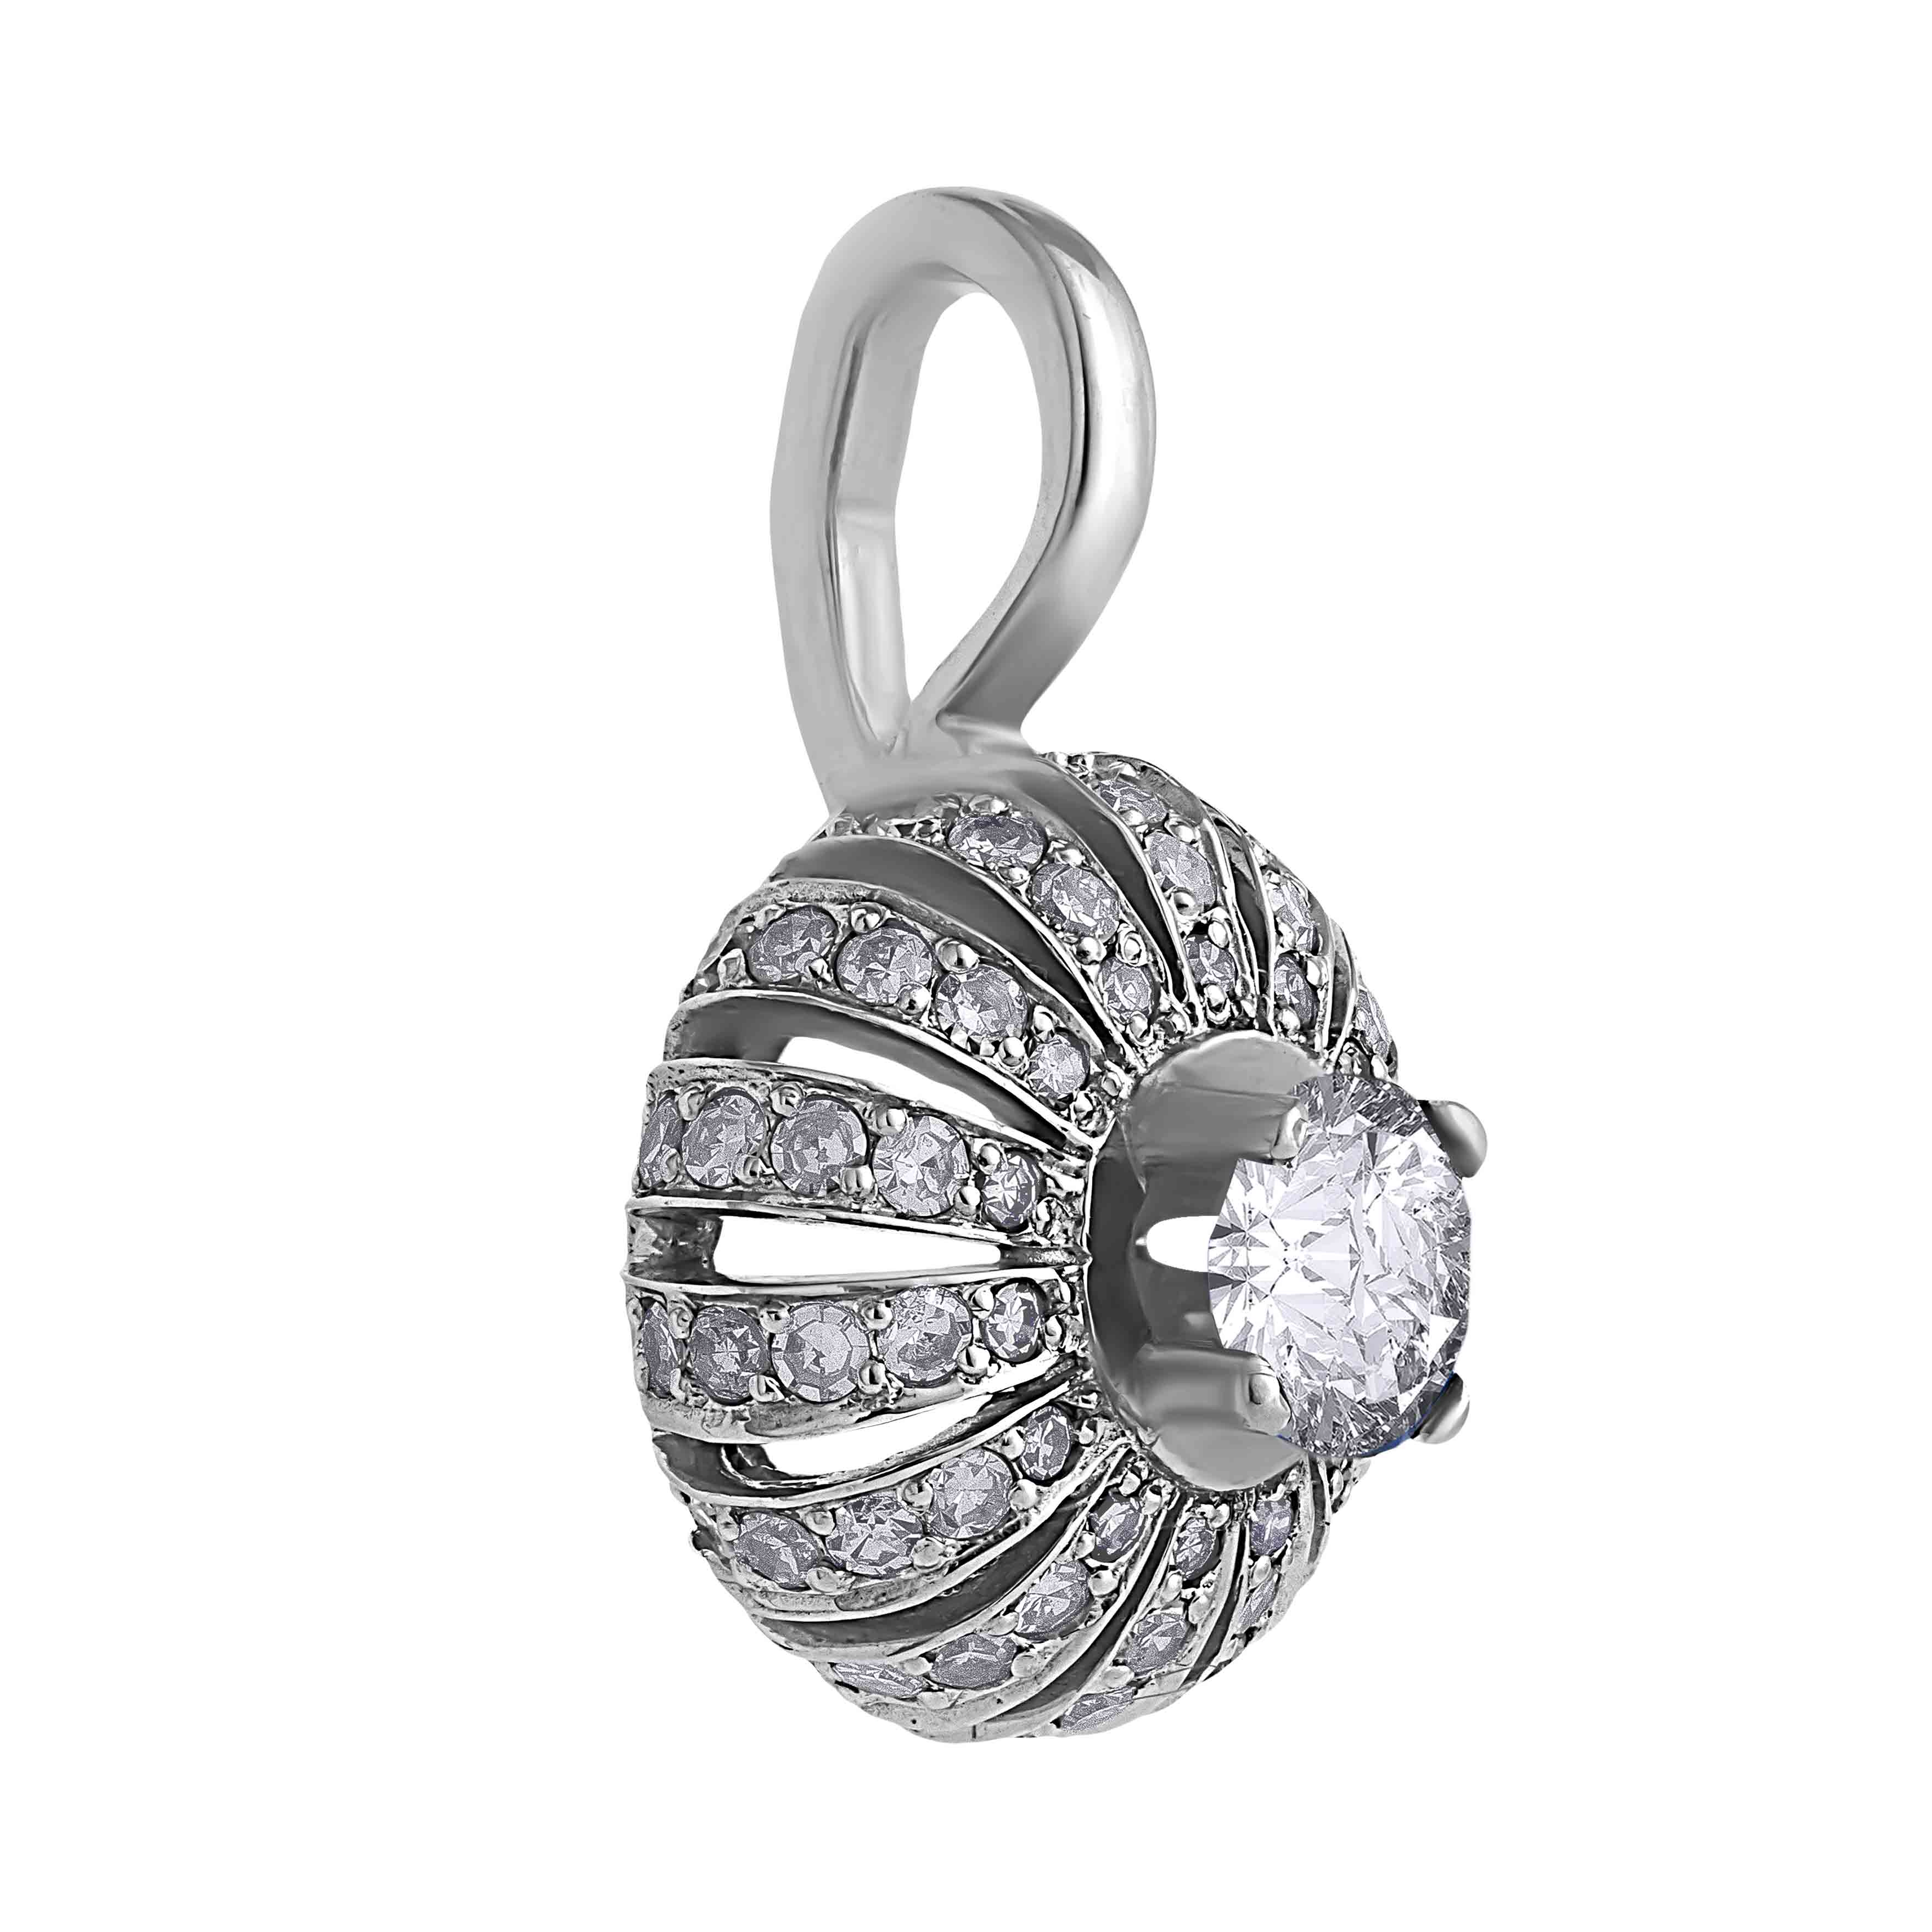 Eastern Motif Diamond Pendant. View 2